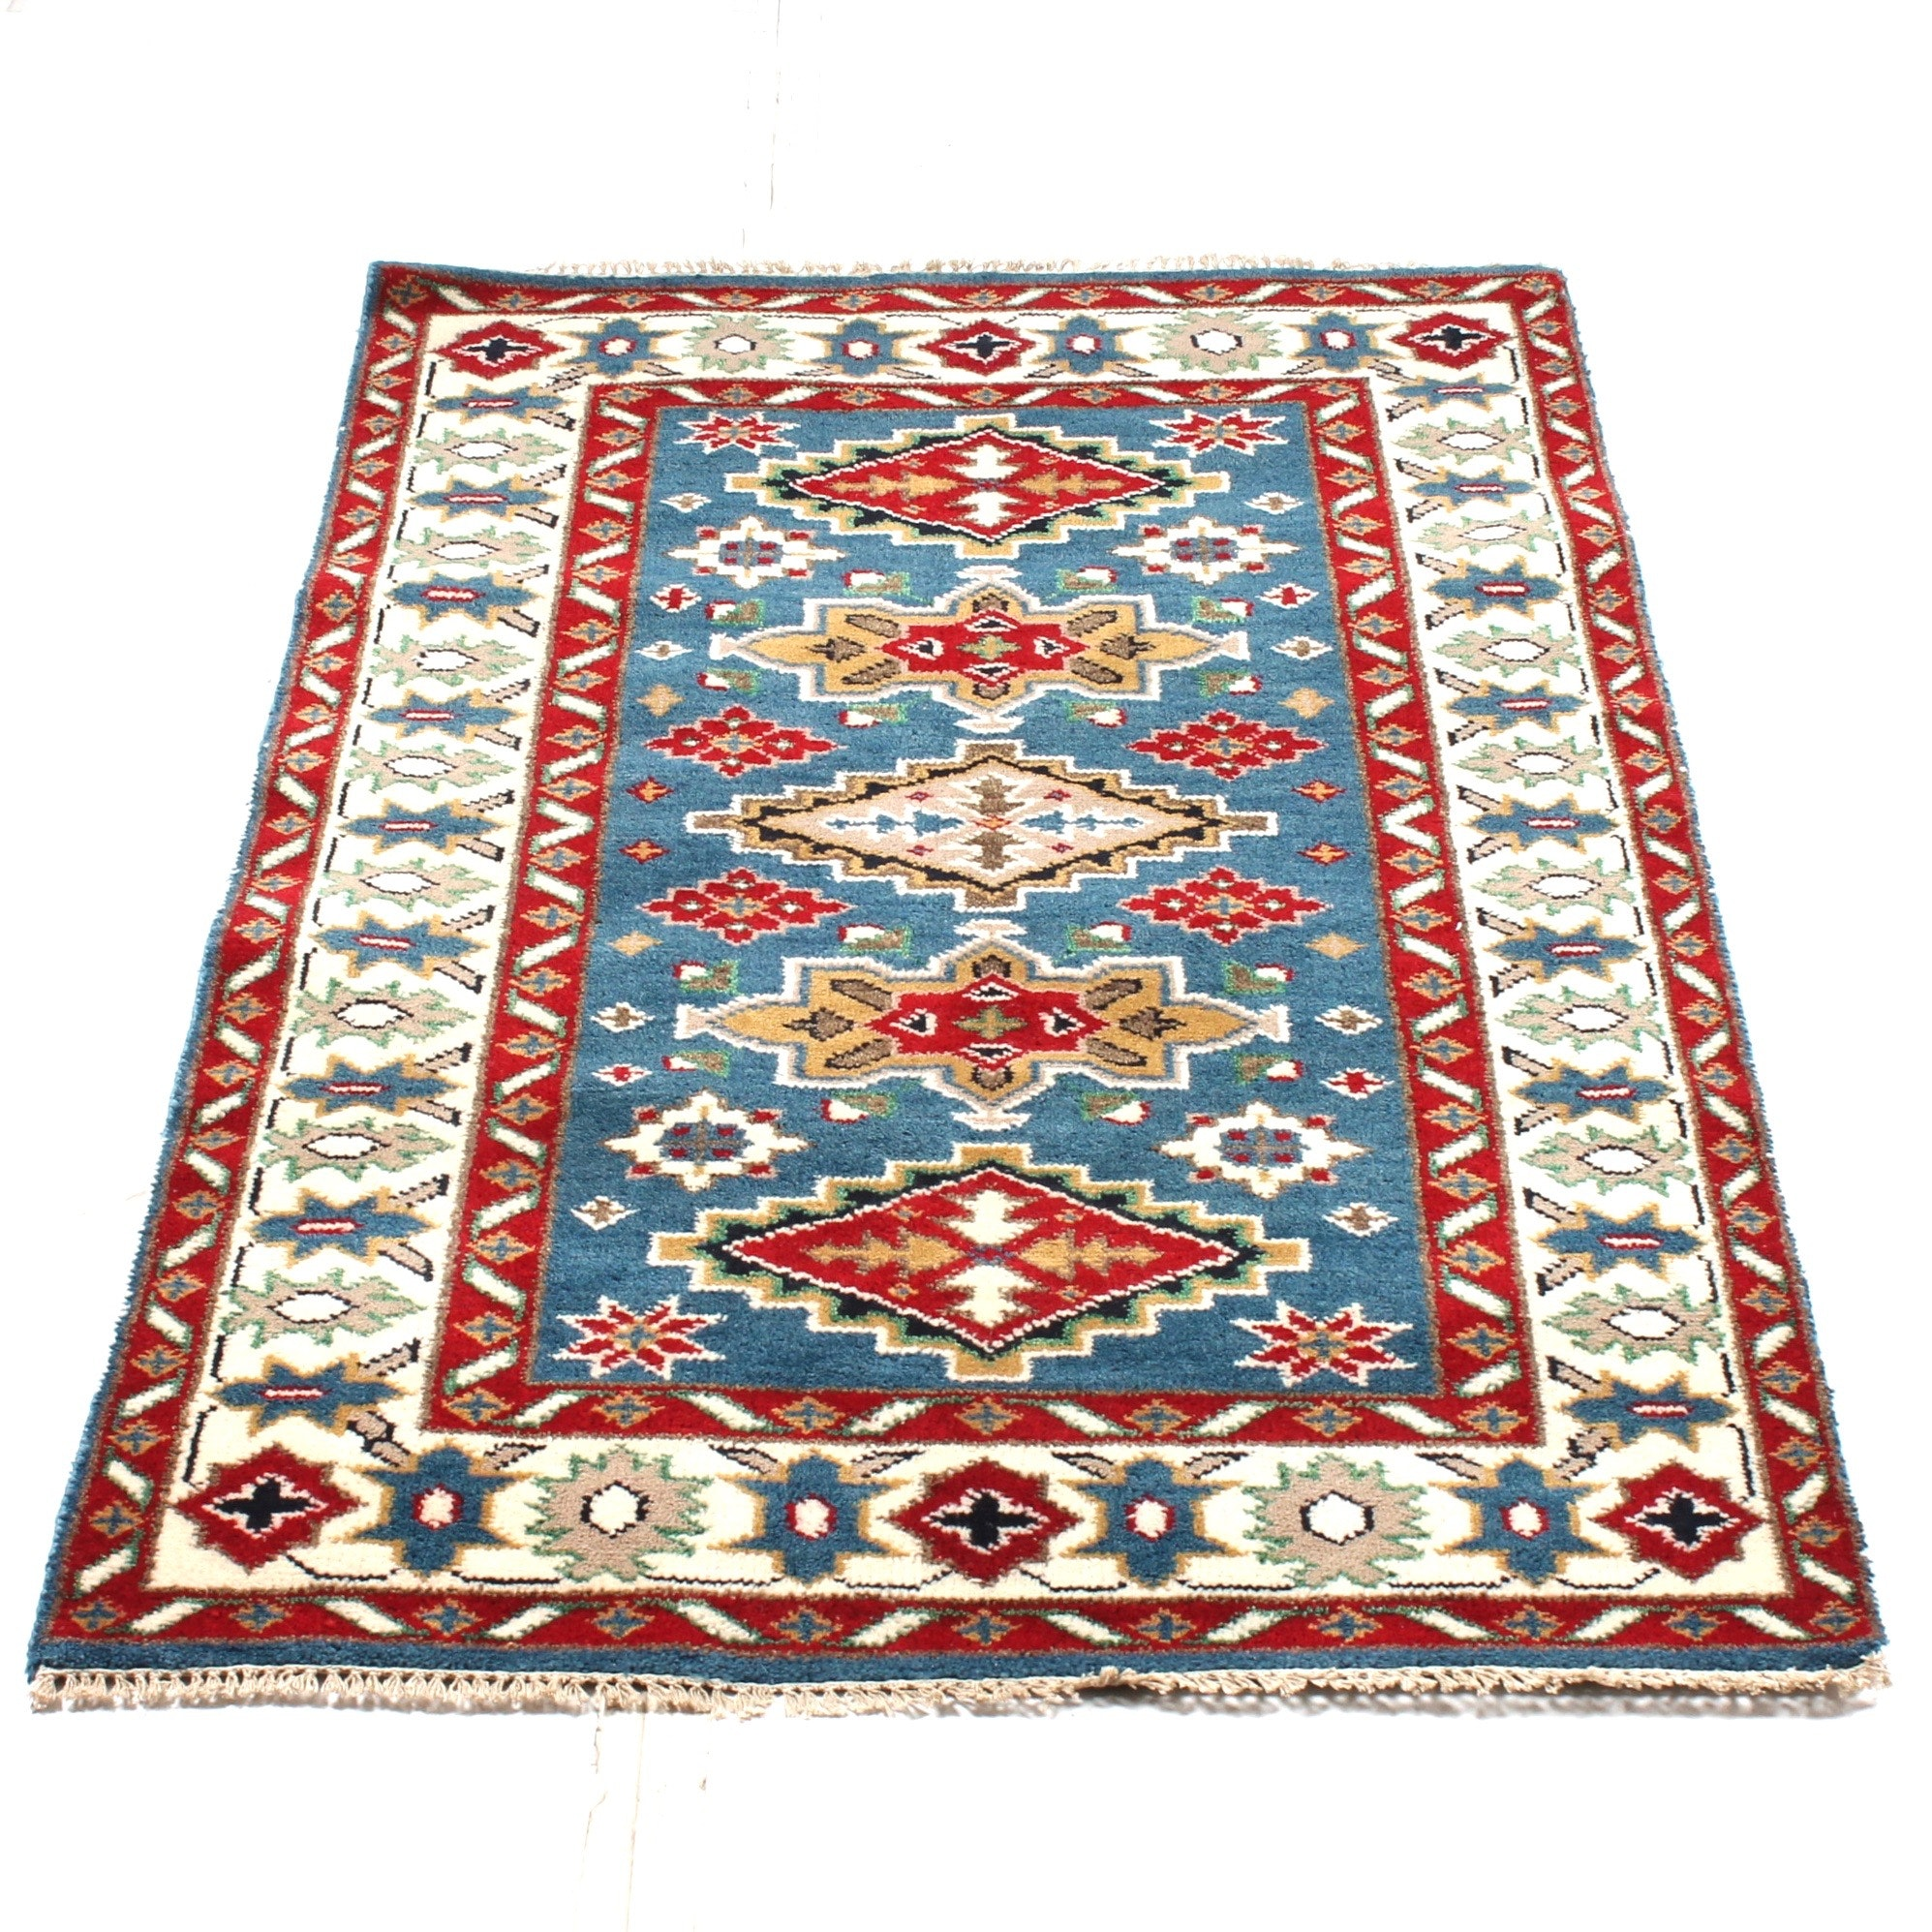 4' x 6' Hand-Knotted Indo-Caucasian Kazak Area Rug